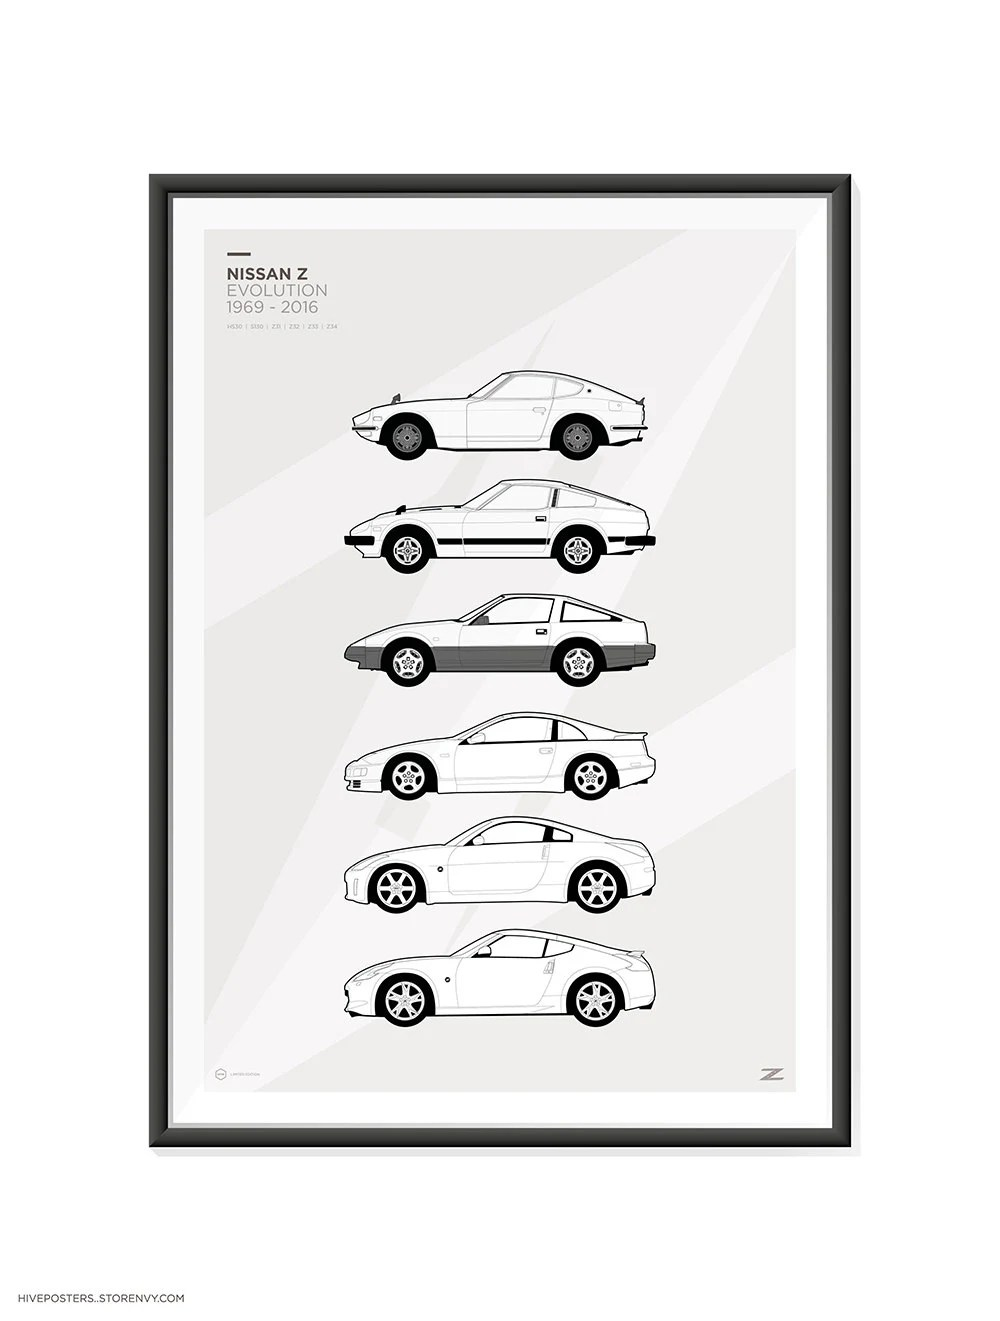 Nissan Z Car Generations Poster by HivePosters on Etsy